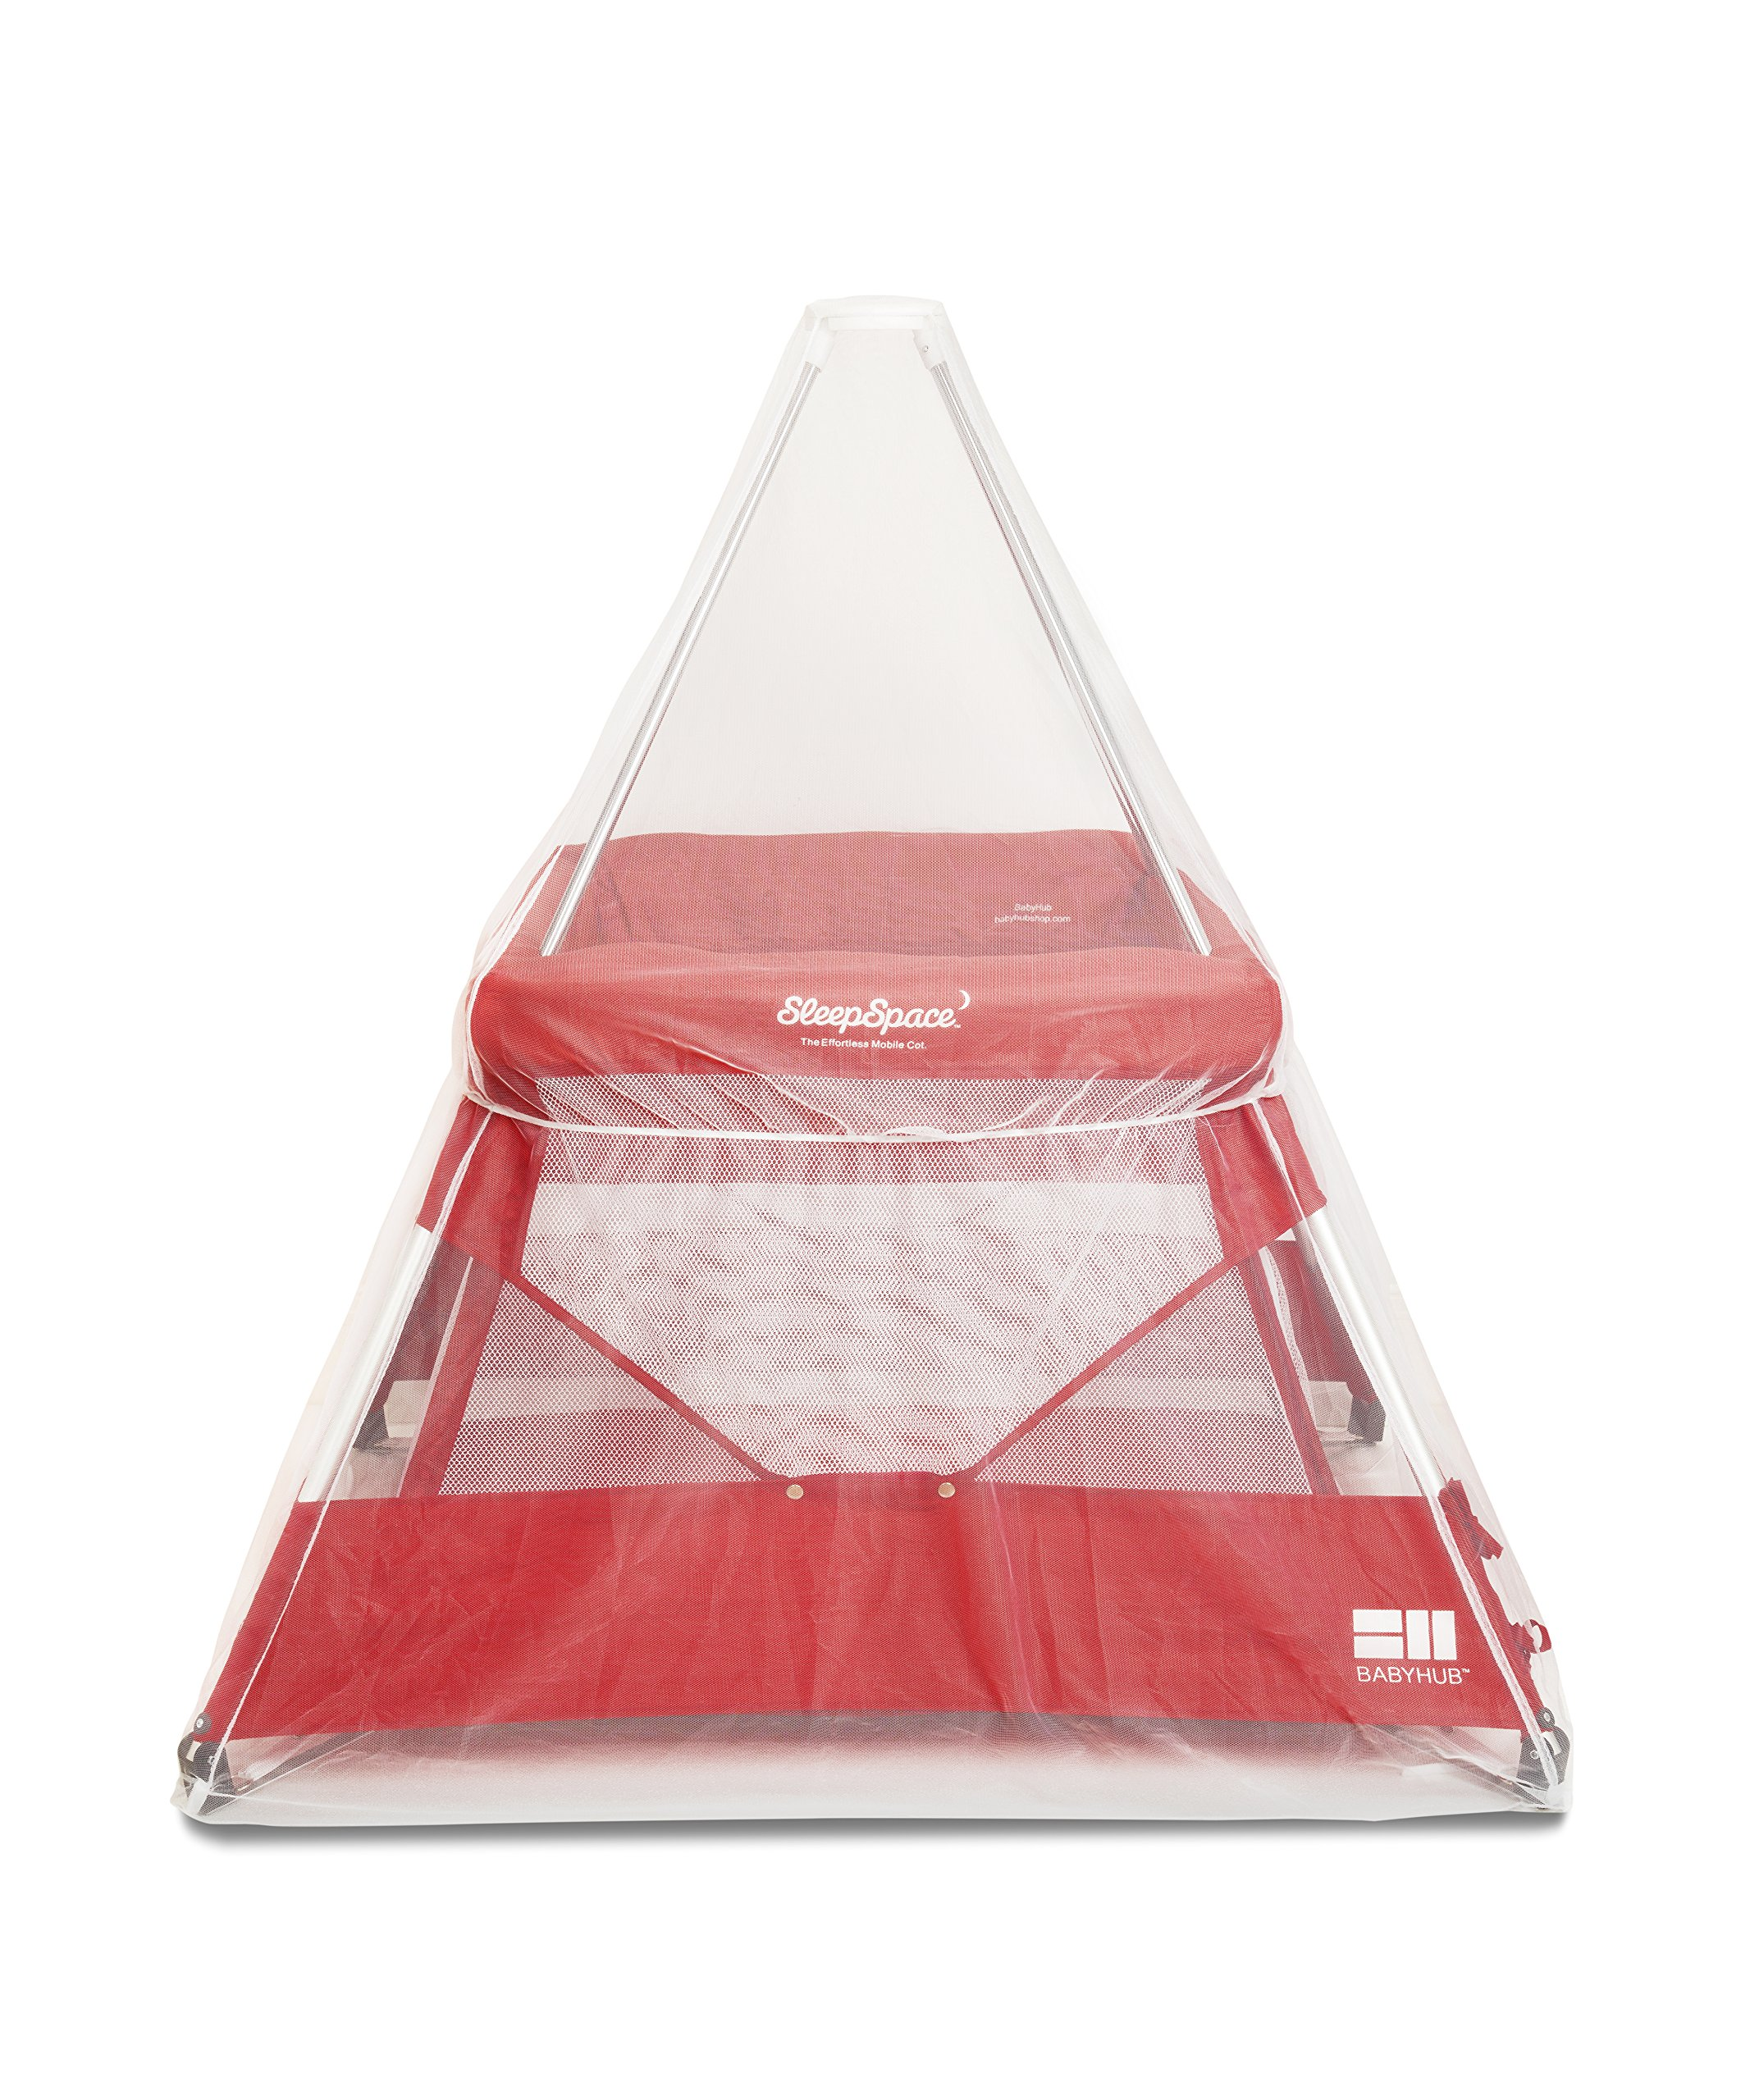 BabyHub SleepSpace Travel Cot with Mosquito Net, Red BabyHub Three cots in one; use as a travel cot, mosquito proof space and reuse as a play tepee Includes extra mosquito net cover that can be securely in place Can be set up and moved even while holding a baby 2